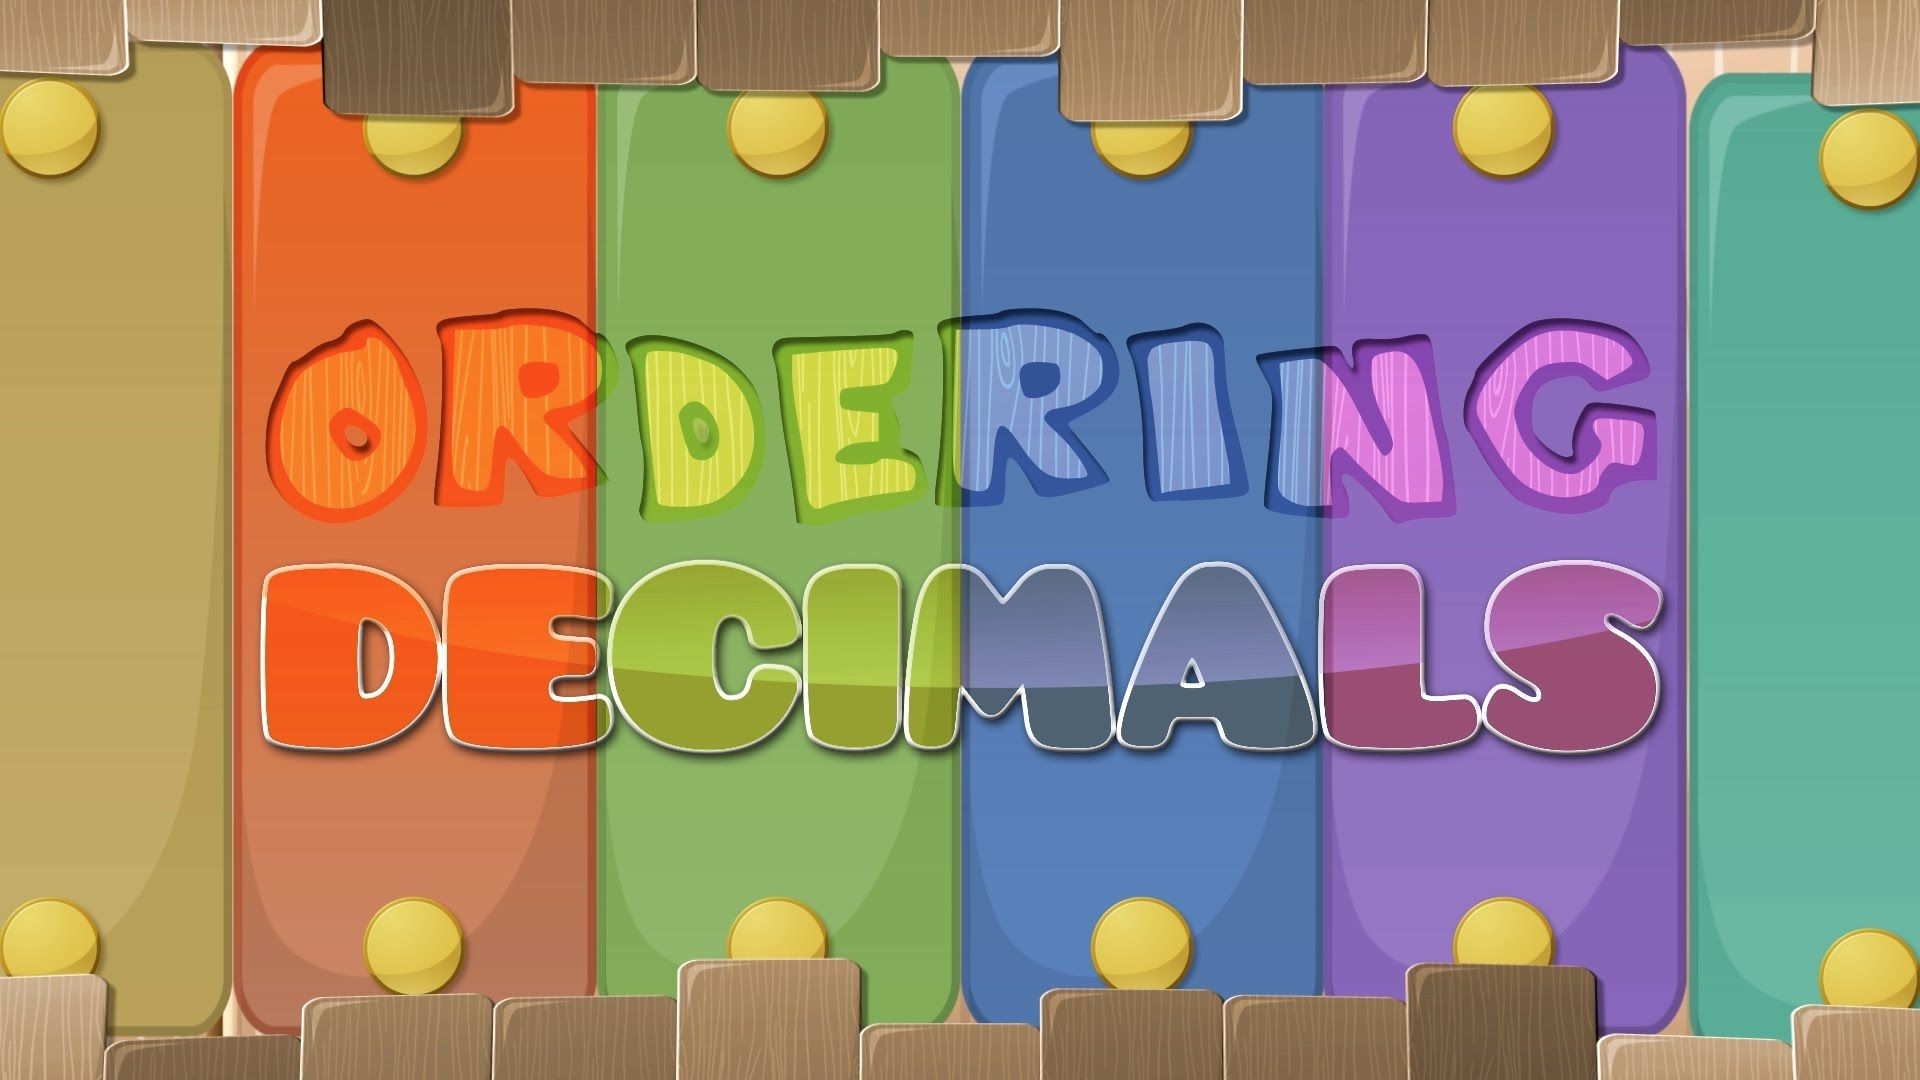 Ordering Decimals Activities Comparing Decimals Worksheets Video And More